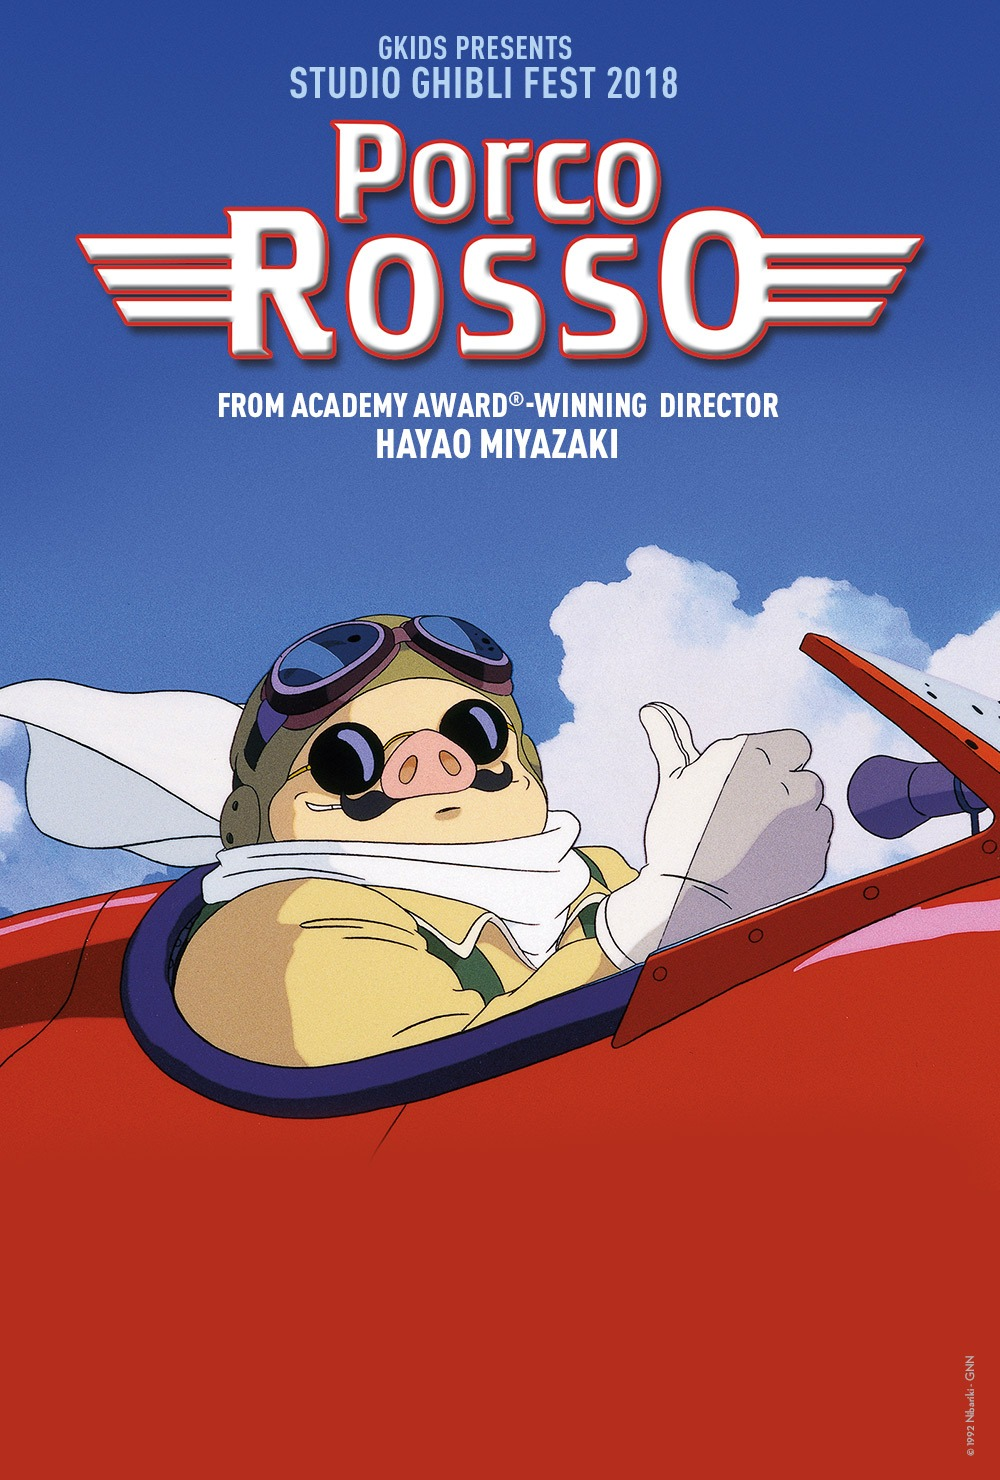 Porco Rosso (Dubbed)